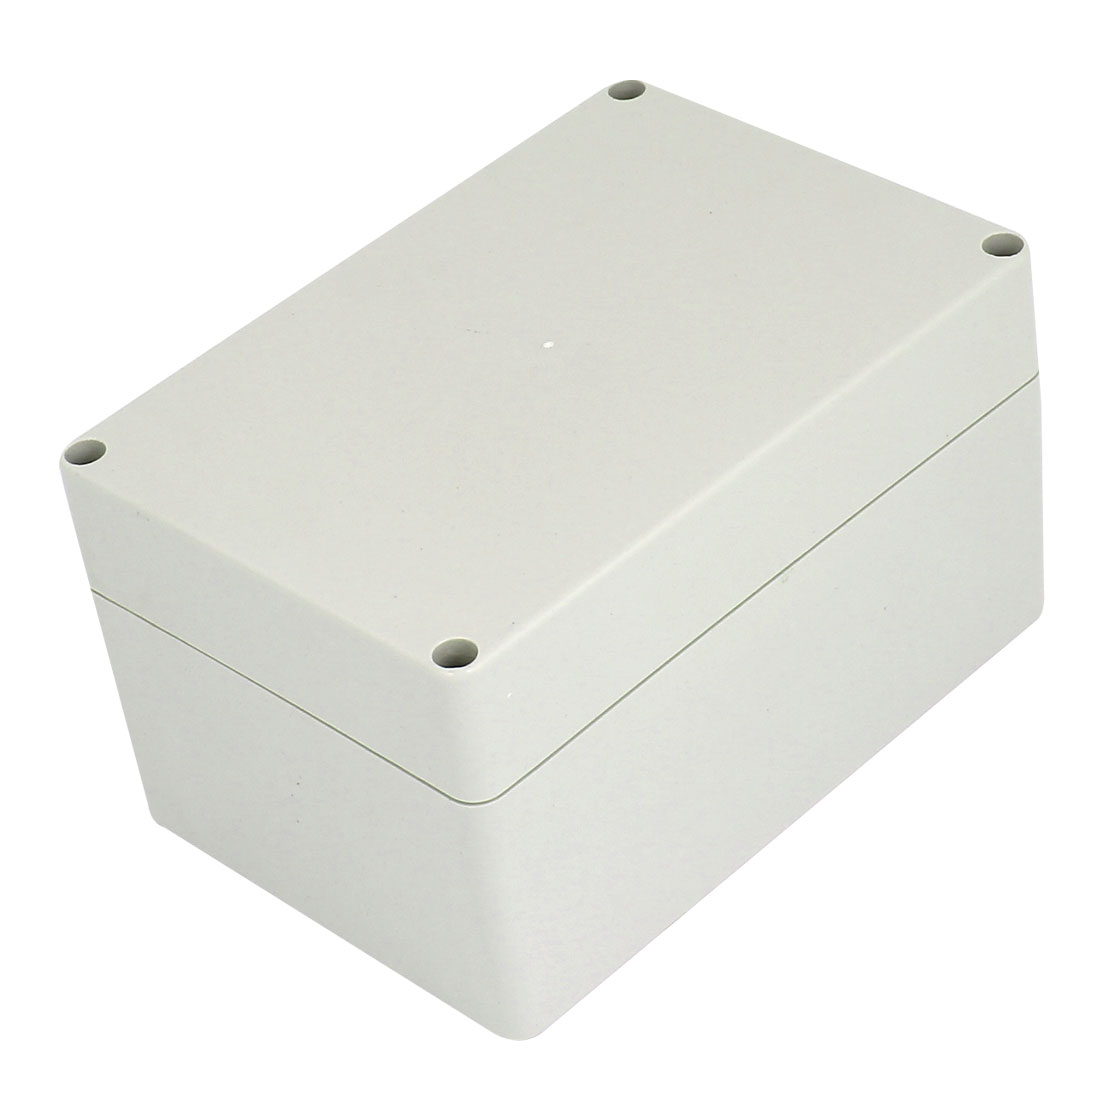 160mm x 110mm x 90mm Dustproof IP65 Sealed Joint DIY Project Electrical Junction Box